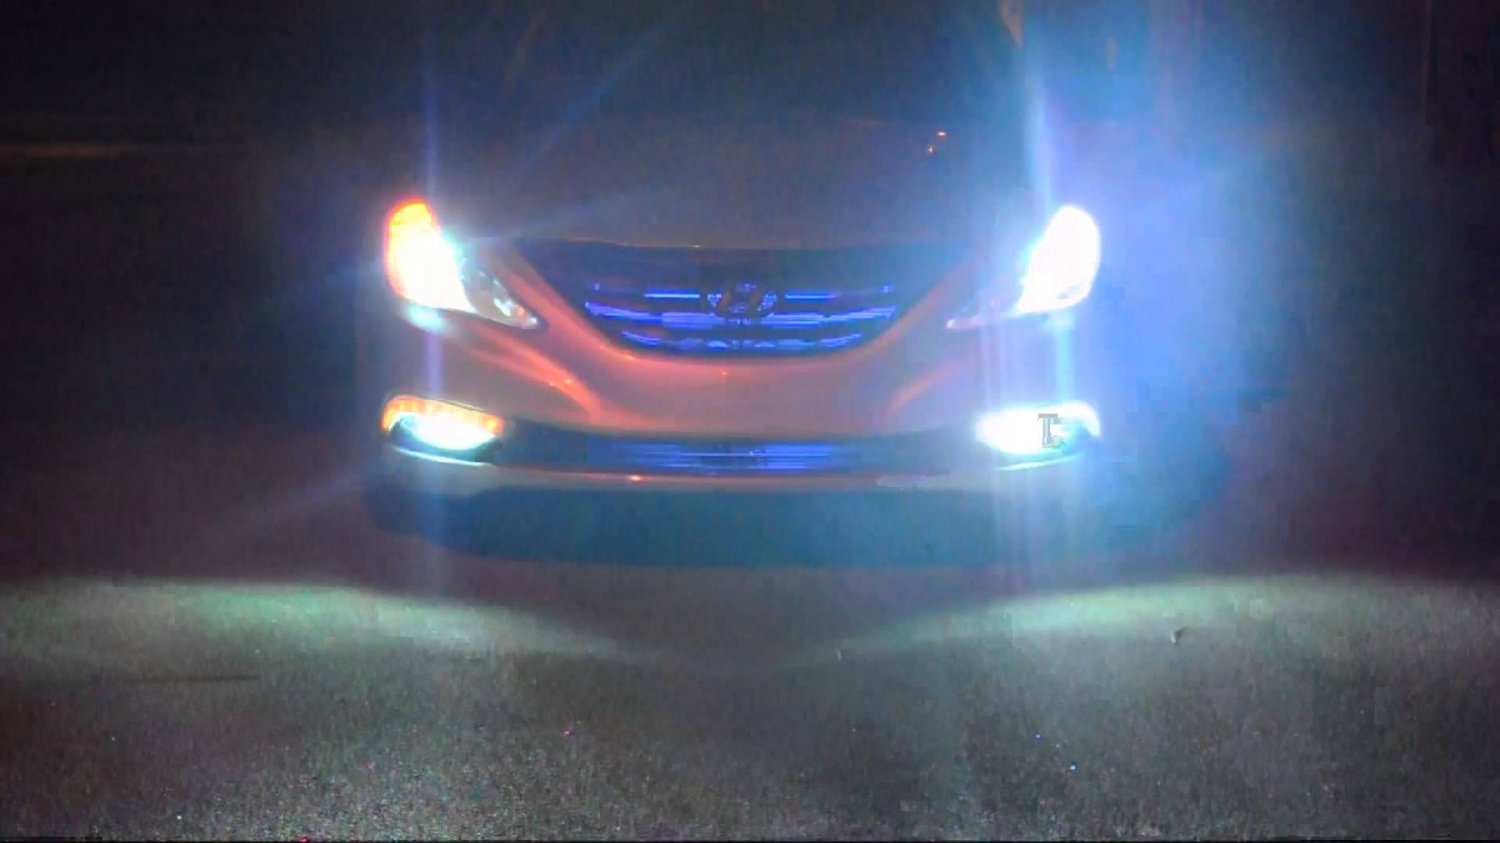 Hyundai Sonata Xenon HID Headlight Headlamp 55w Conversion Kit